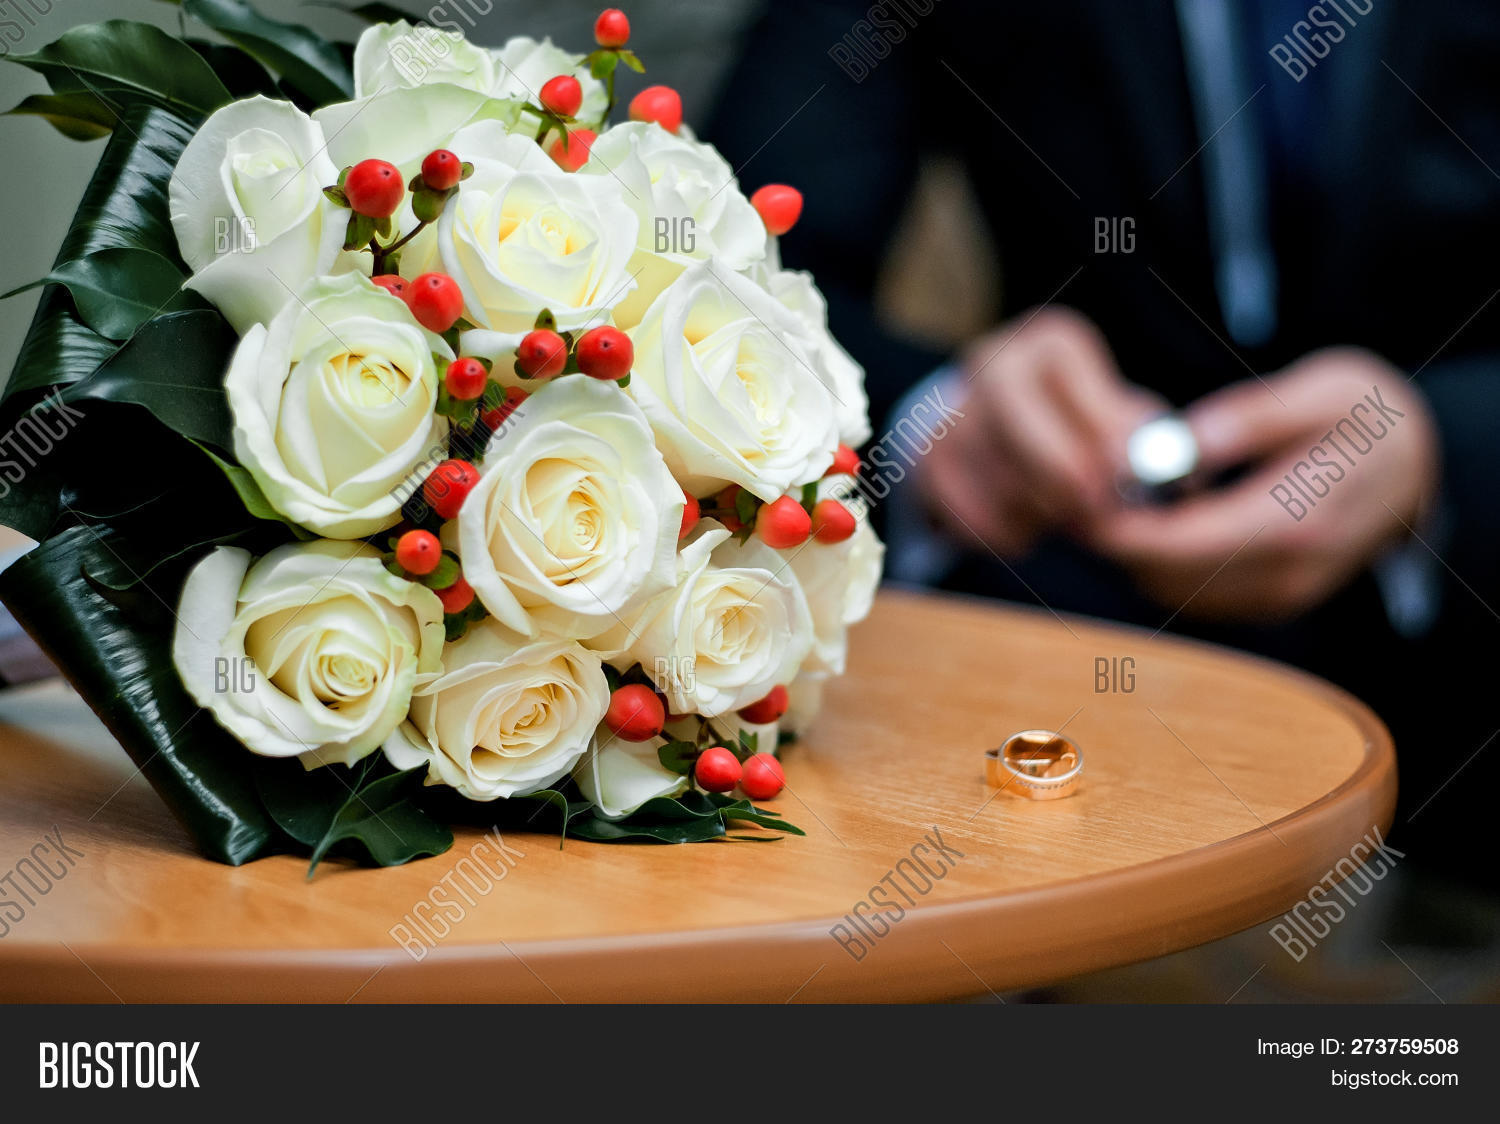 Wedding Mother Image Photo Free Trial Bigstock,Party Dress For Wedding Guest